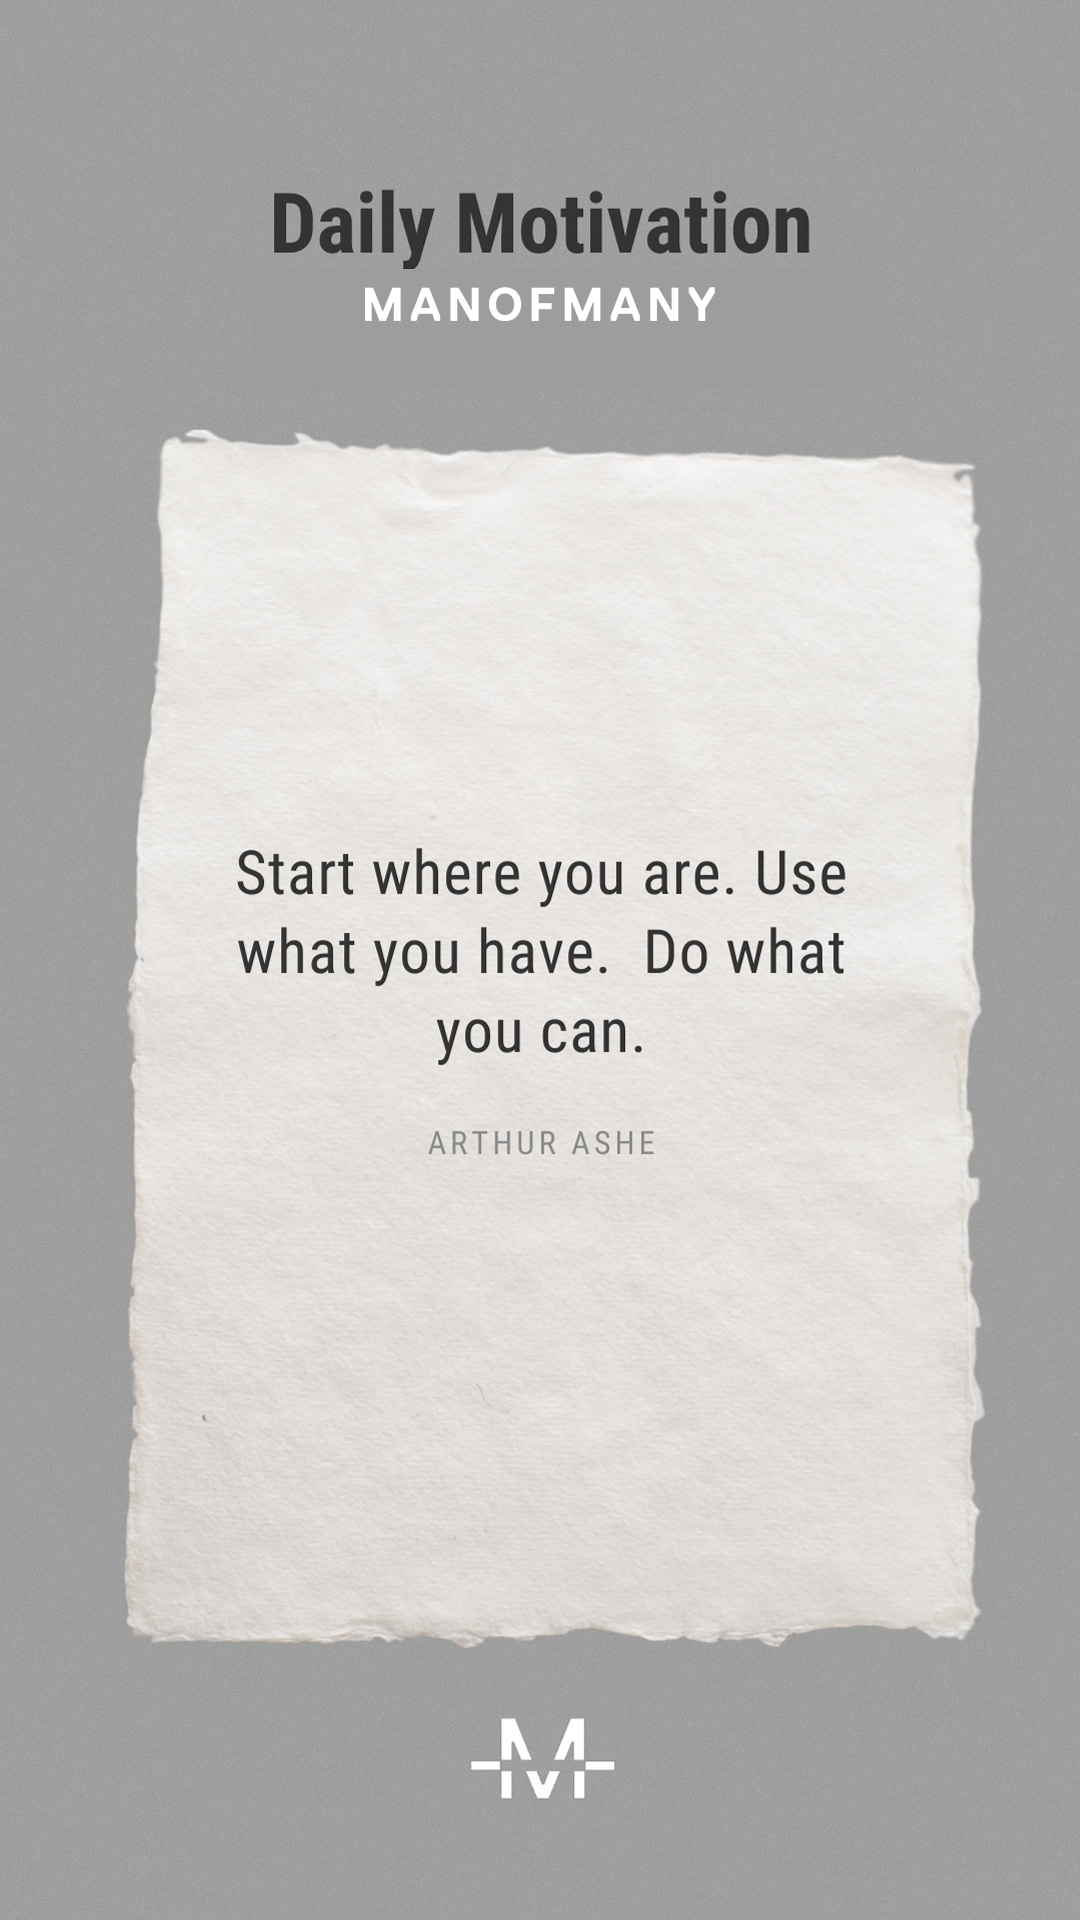 Start where you are. Use what you have. Do what you can. –Arthur Ashe quote